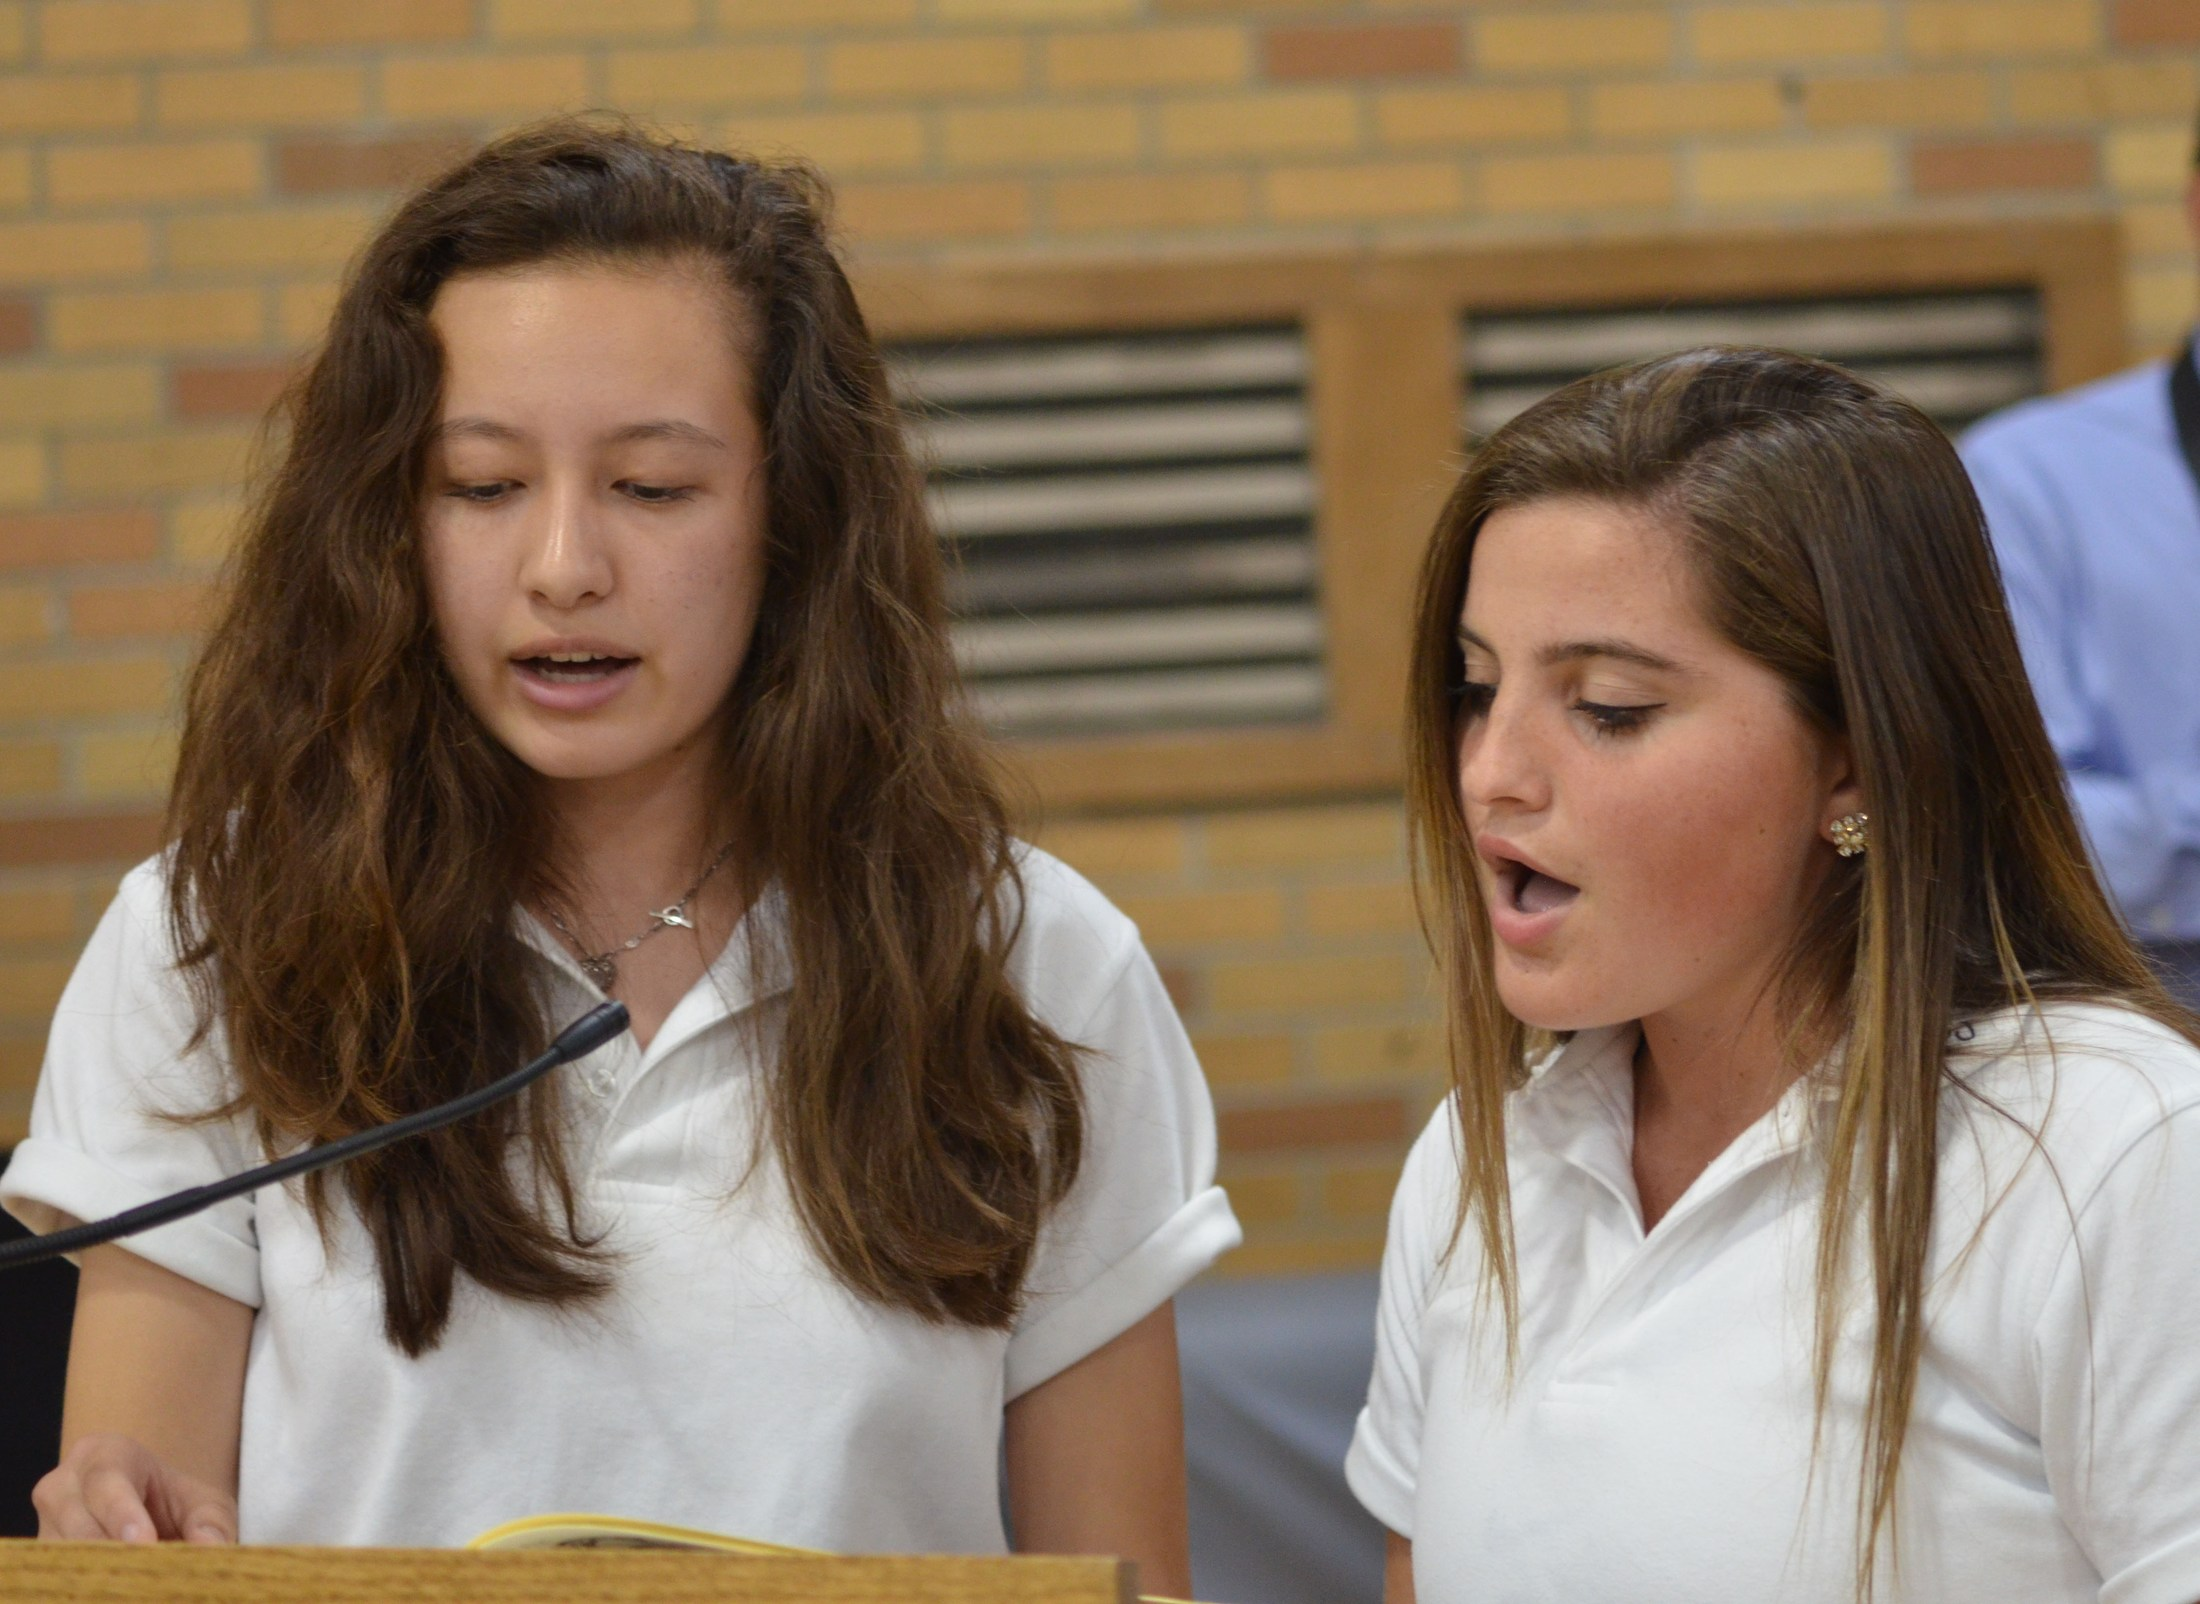 Two girl students sing song in mass